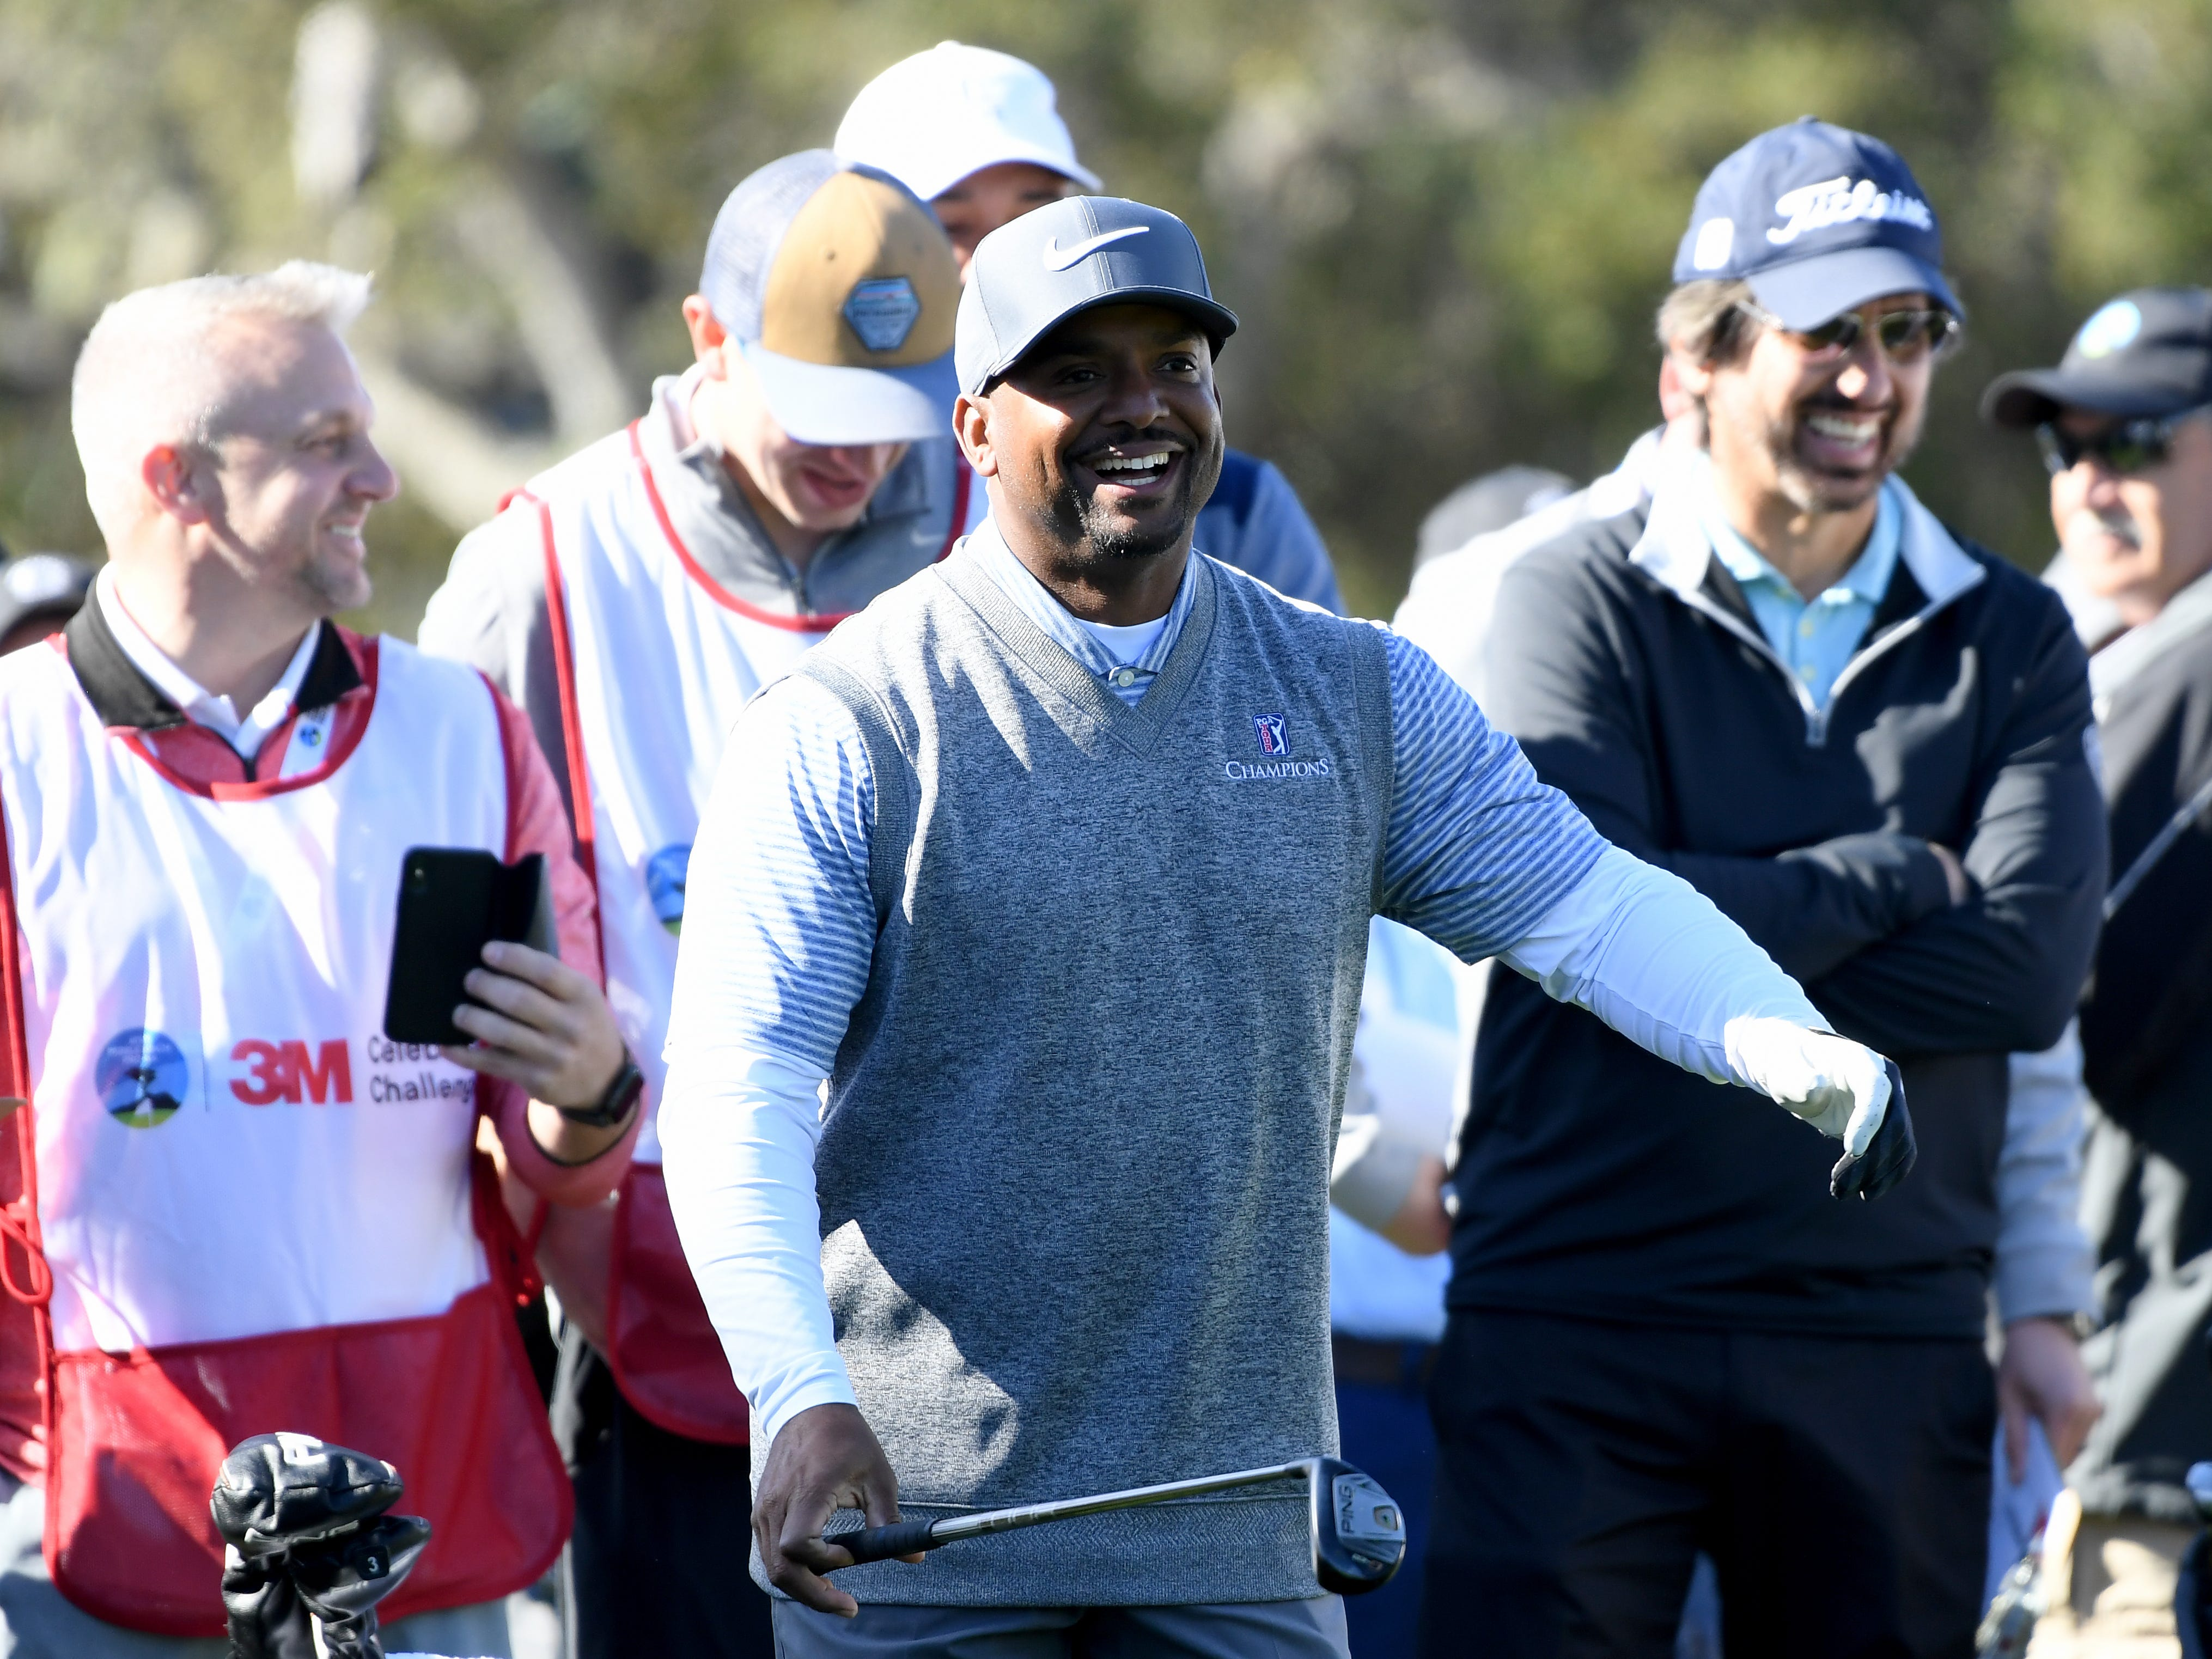 Alfonso Ribeiro laughs on the first tee during the 3M Celebrity Challenge at the AT&T Pebble Beach Pro-Am.